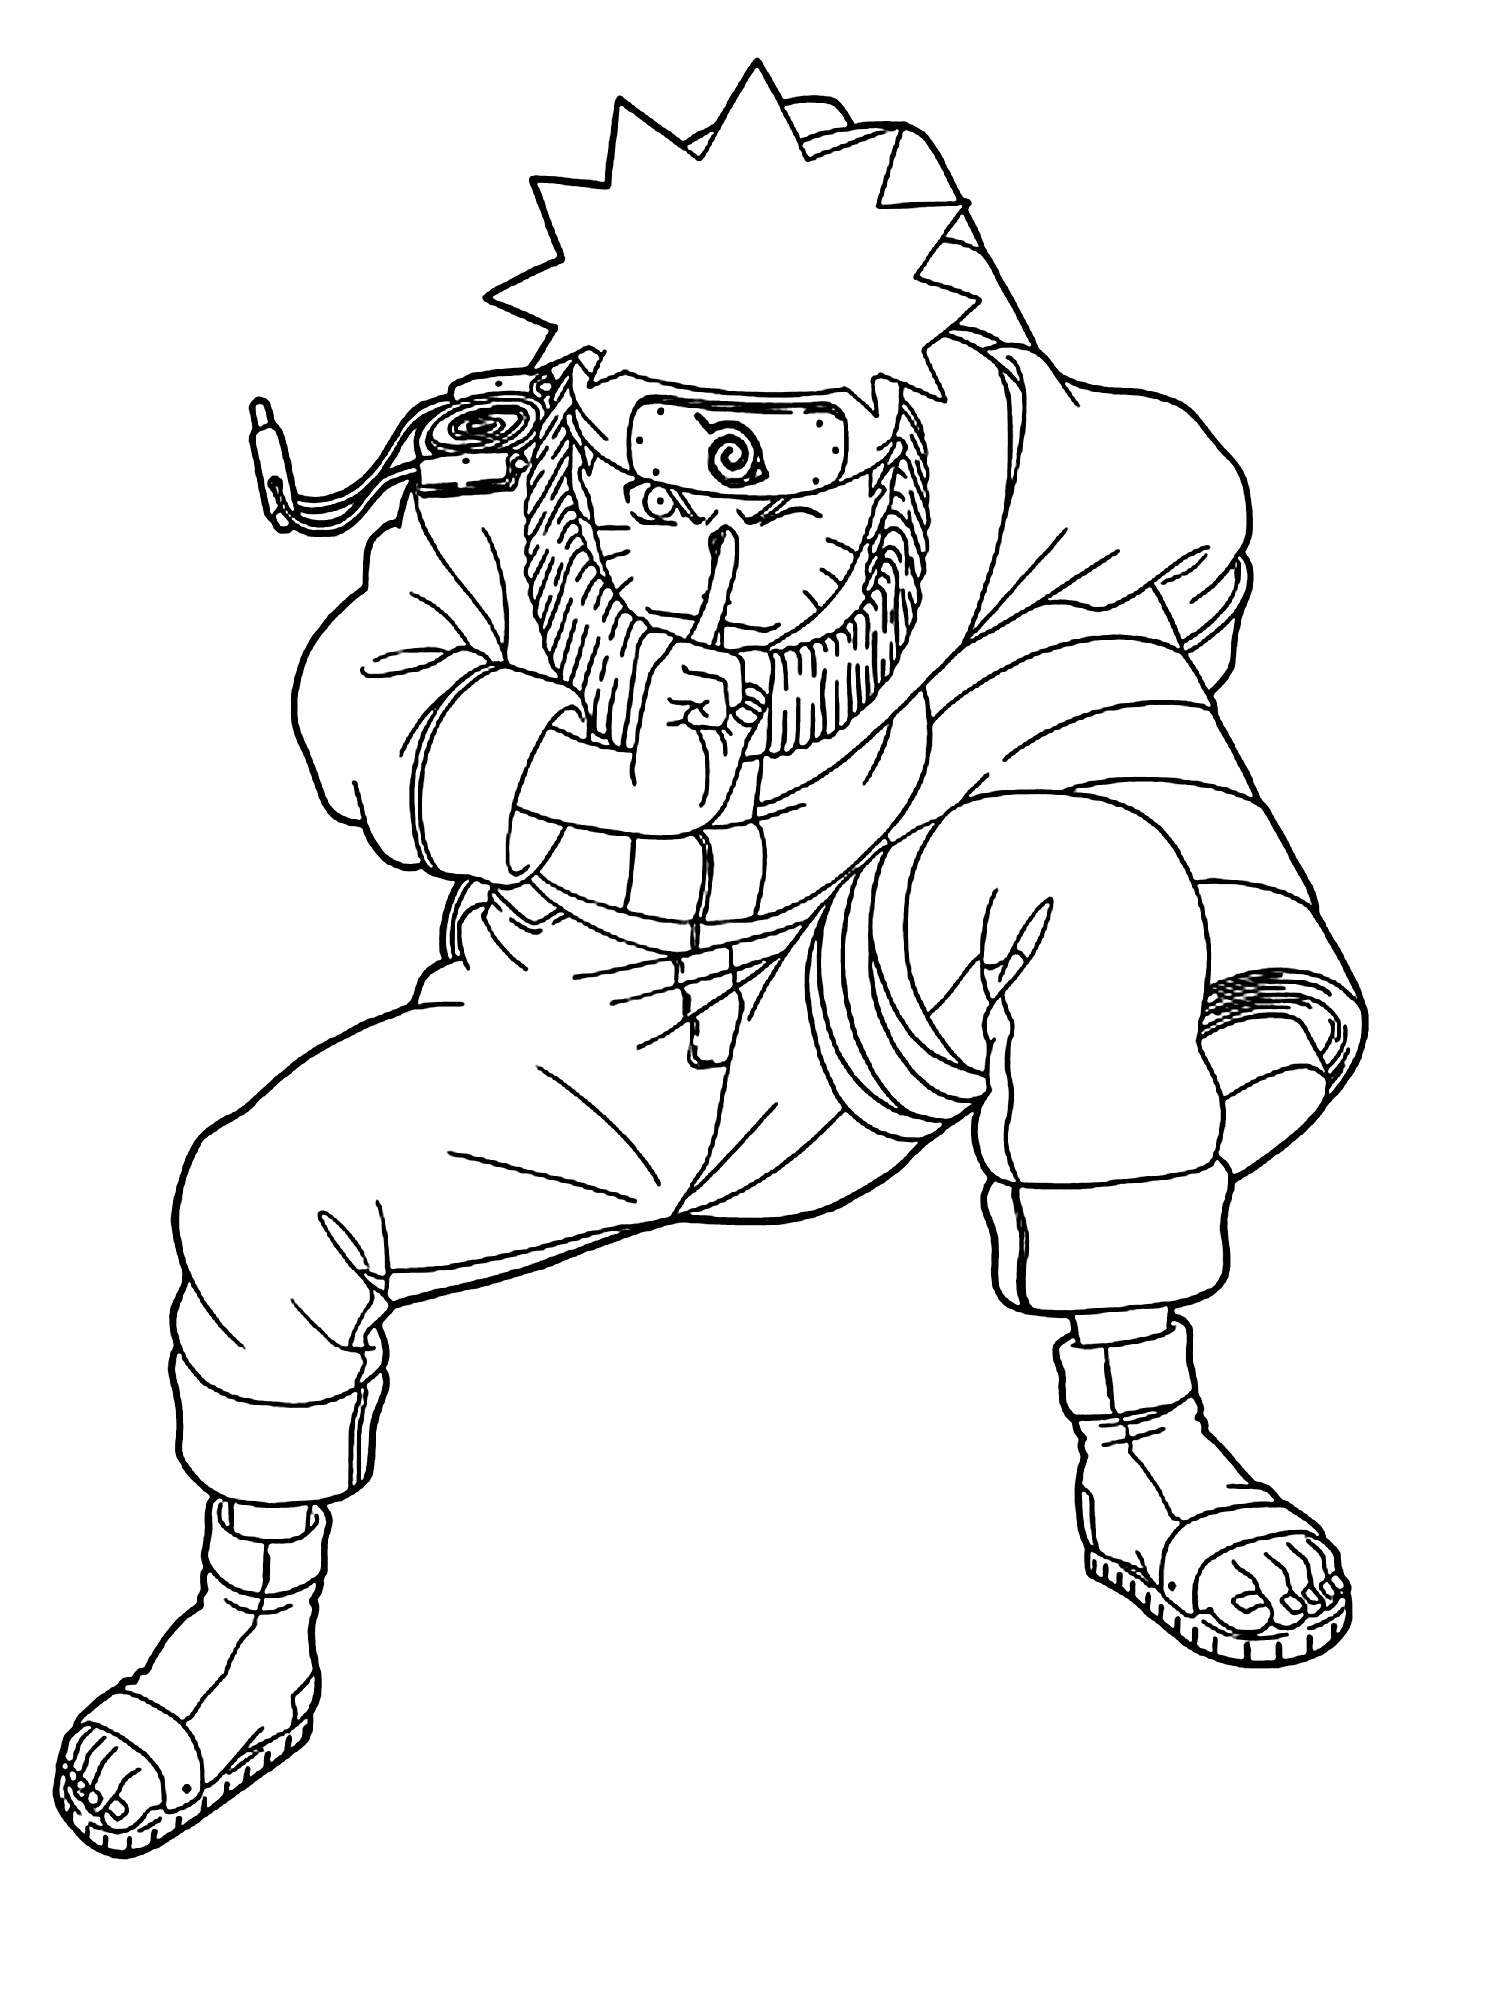 coloring pages of naruto printable coloring pages naruto coloring pages naruto pages coloring of